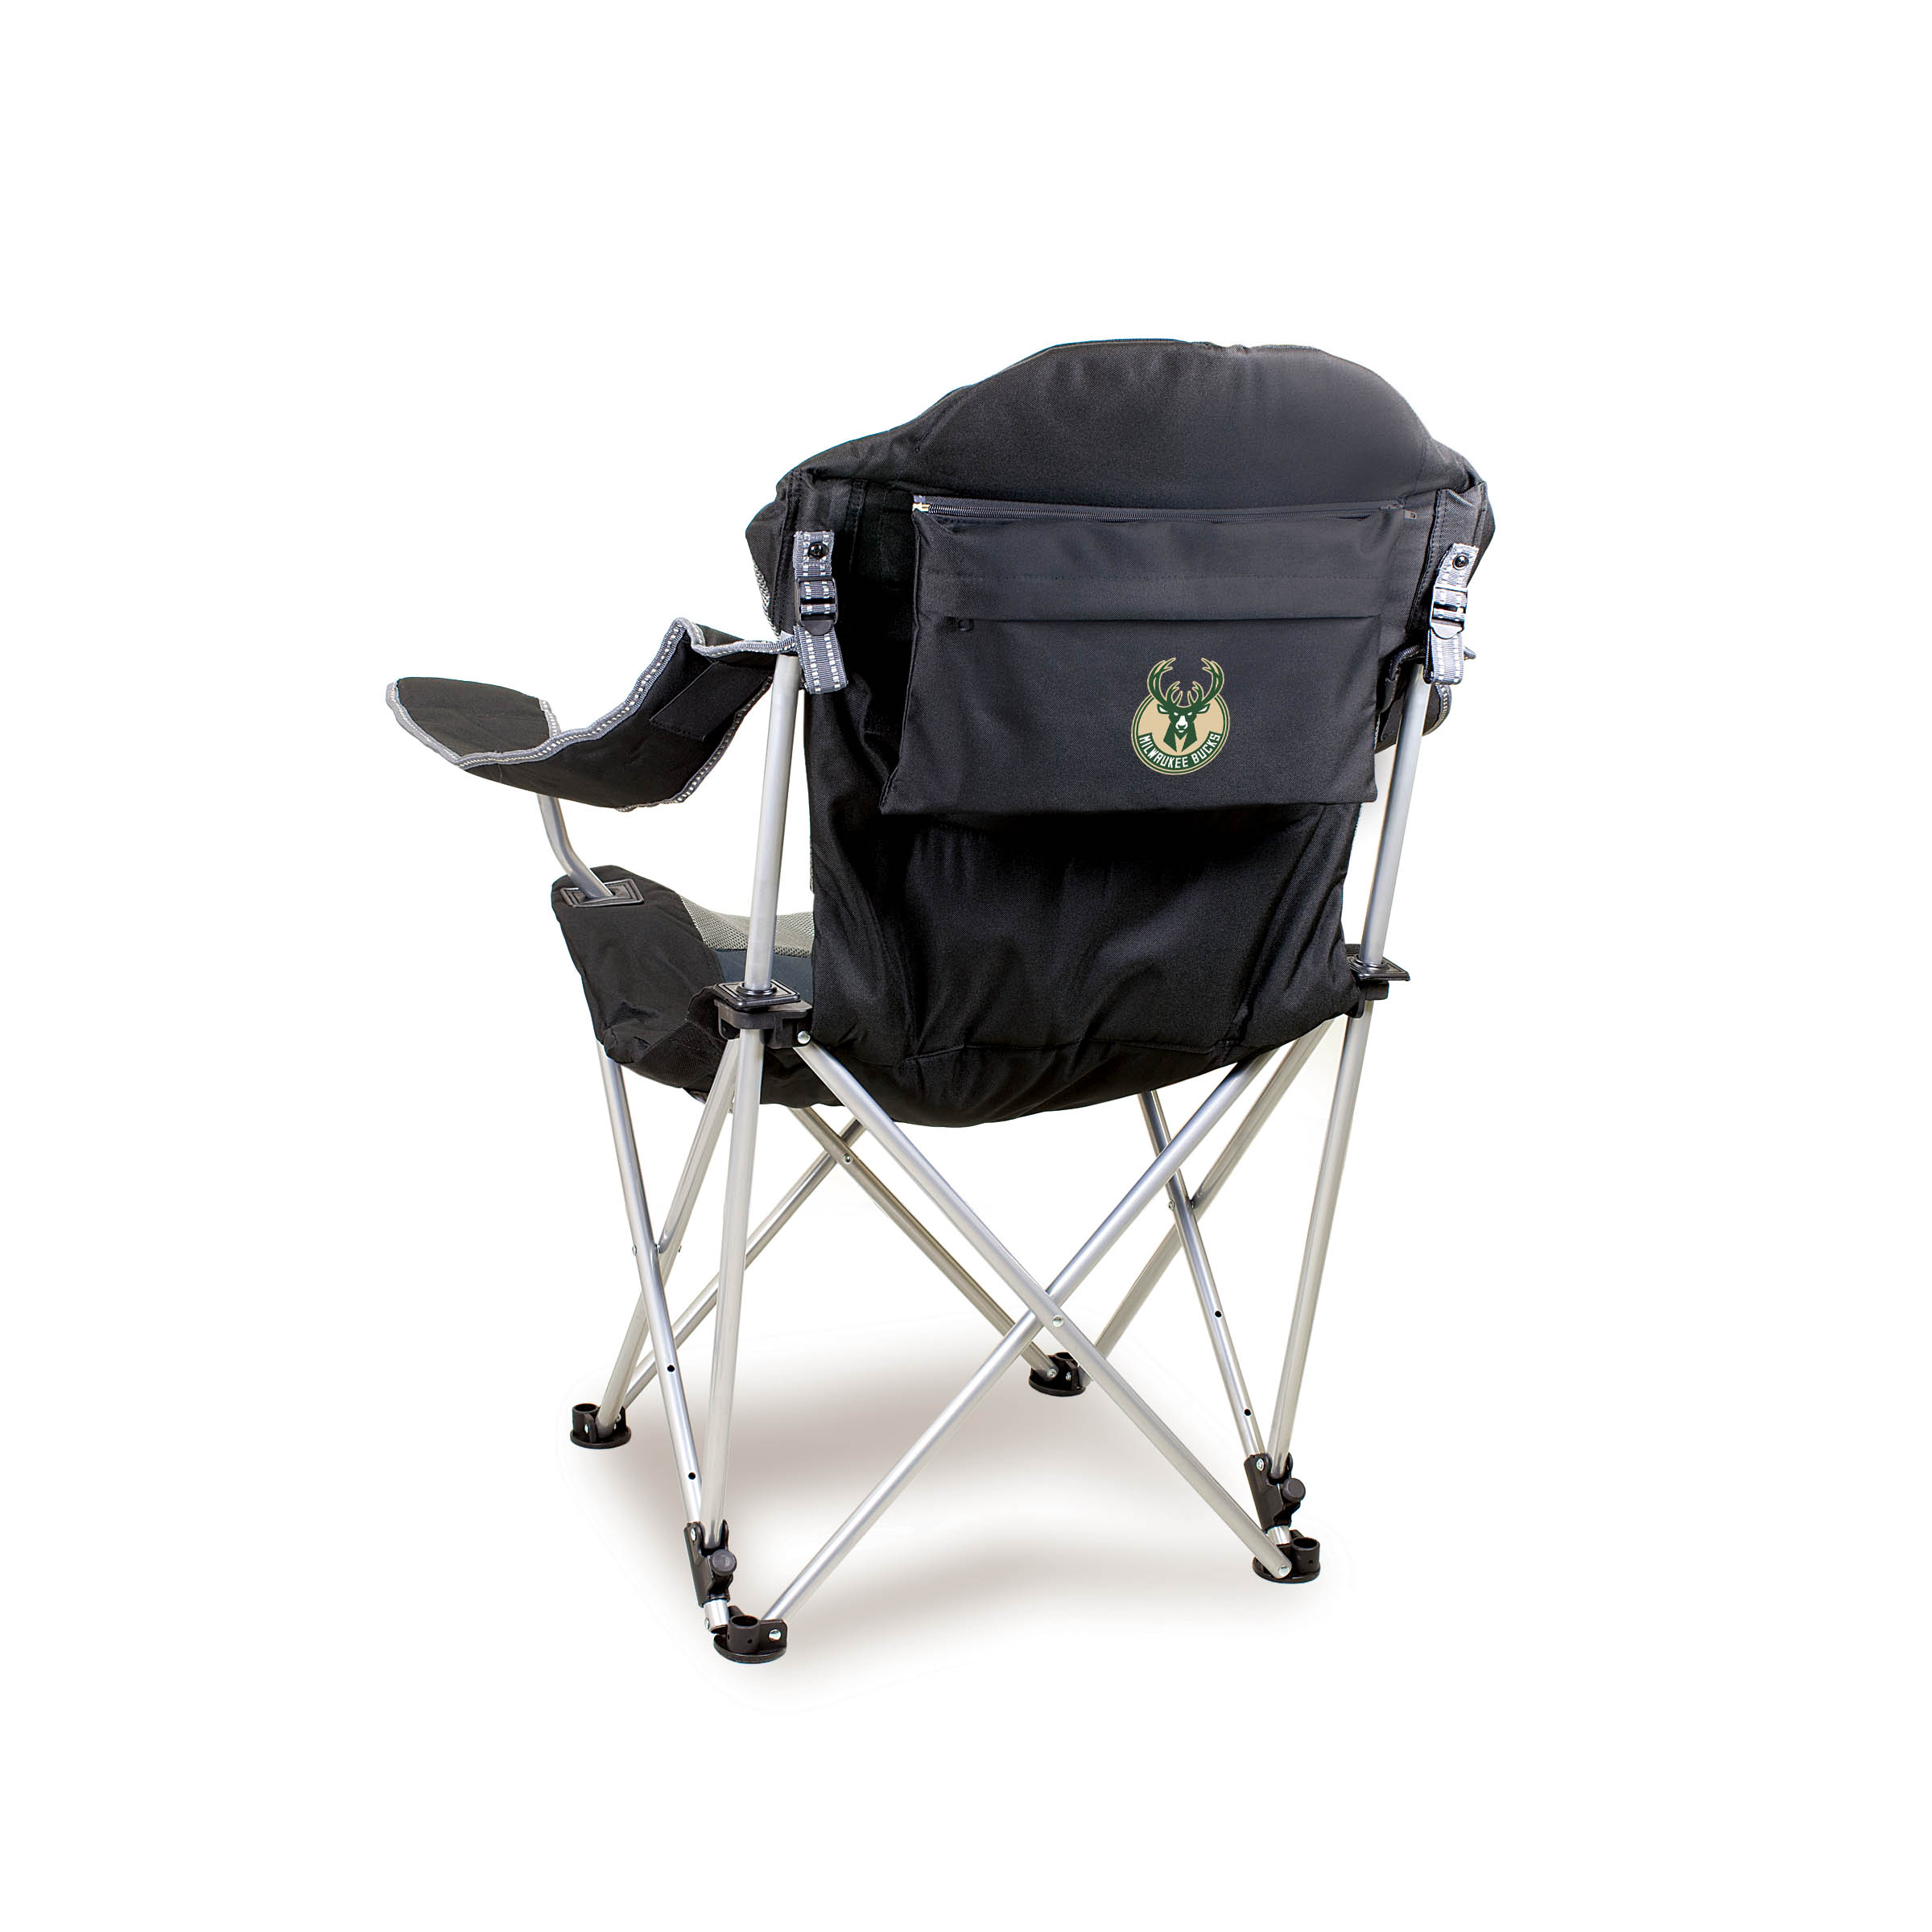 Reclining Camp Chair Reclining Camp Chair Black Milwaukee Bucks Digital Print